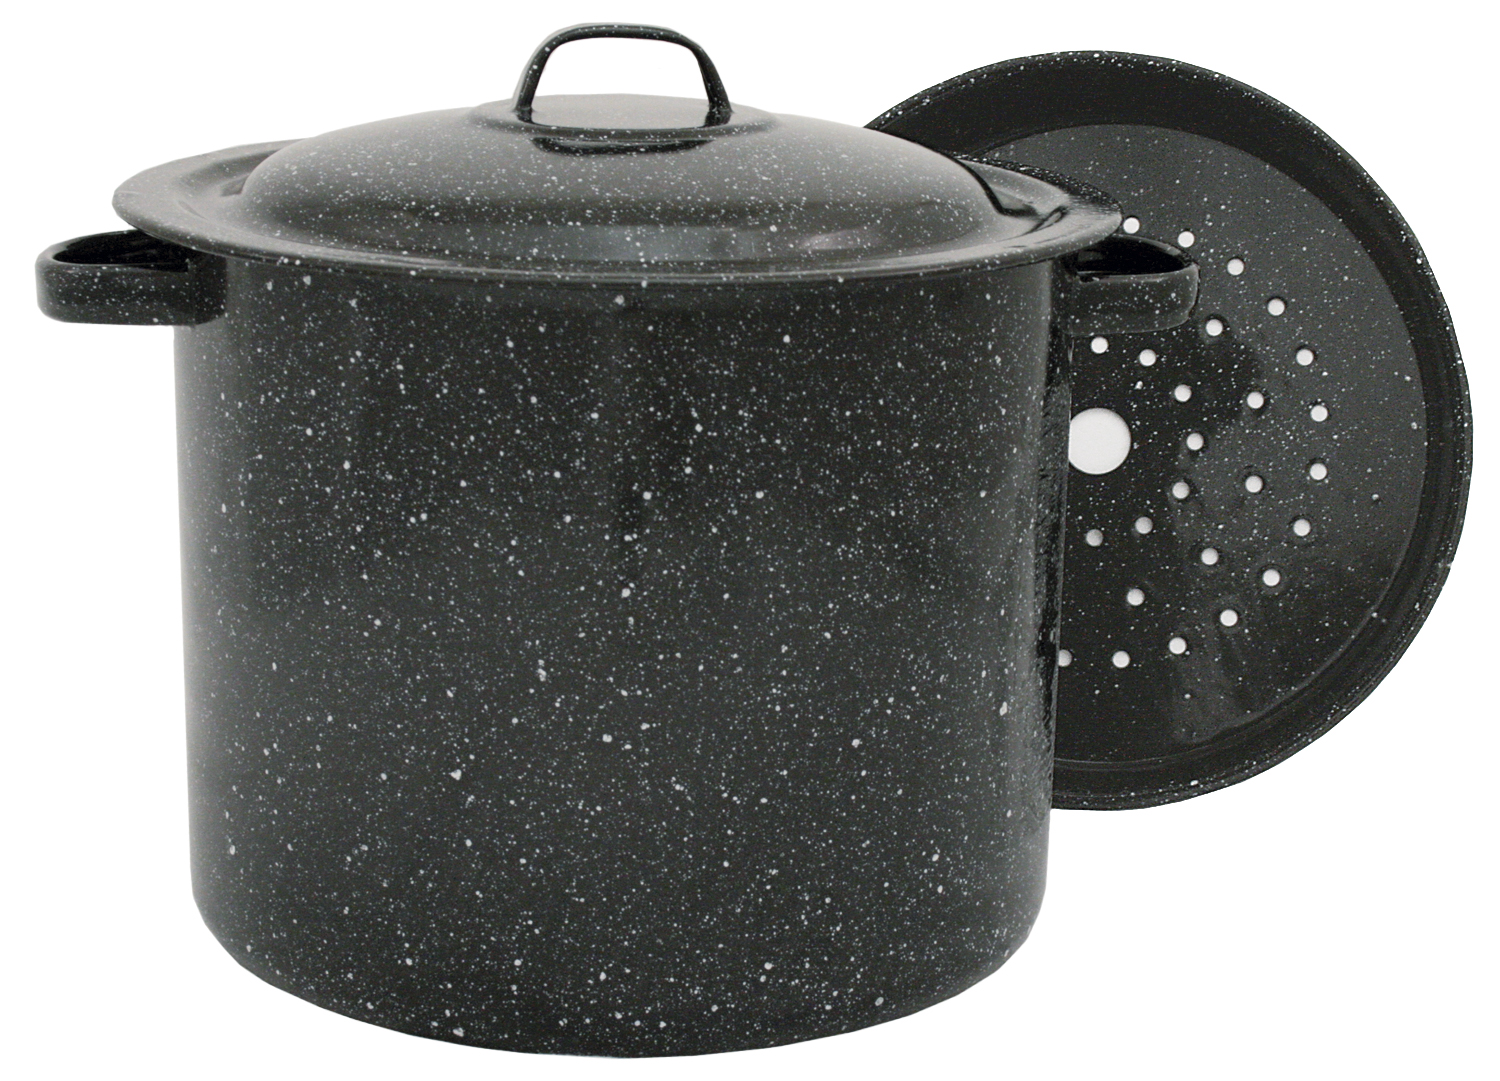 Ceramic Coated Pots & Pans